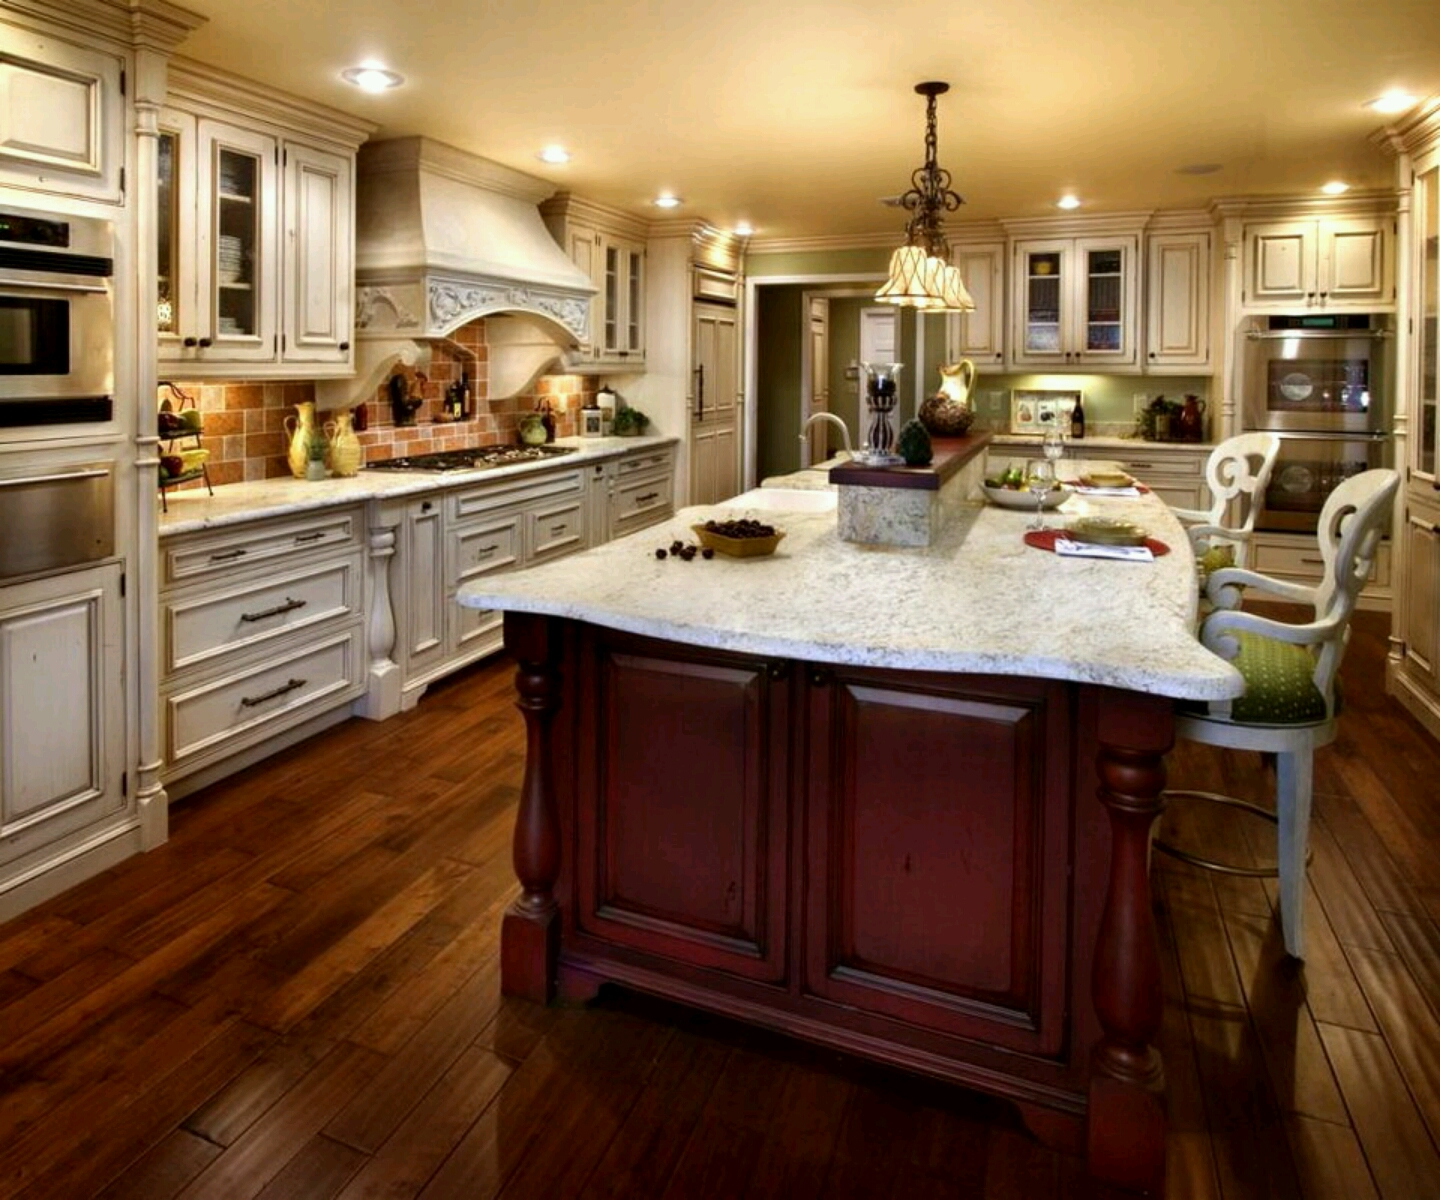 Kitchen Designs: Luxury Kitchen, Modern Kitchen Cabinets Designs